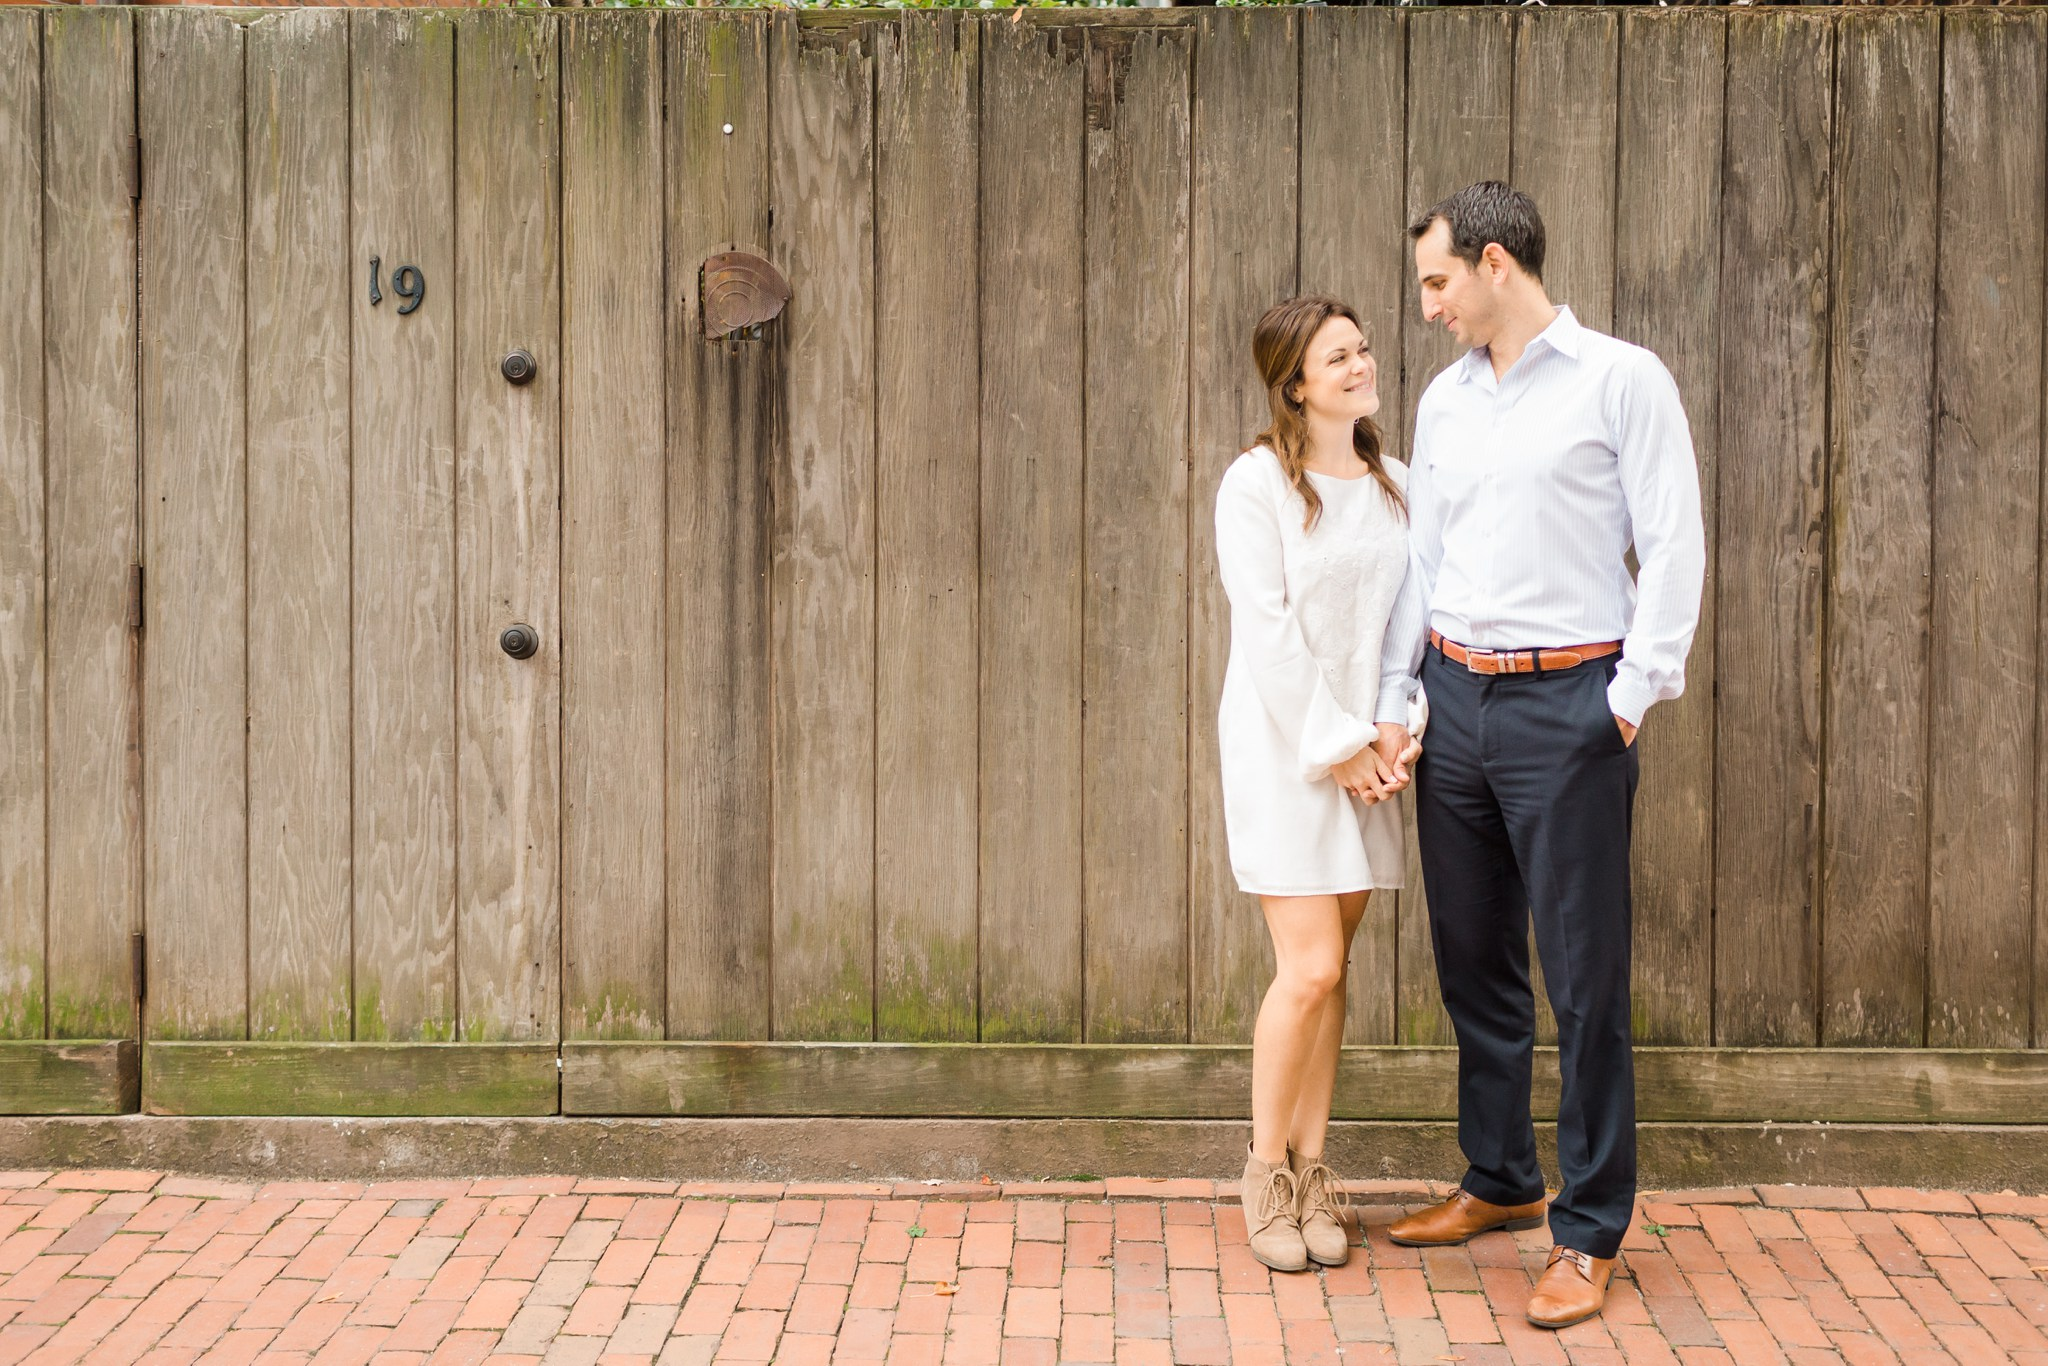 south_end_engagement_session_00003.JPG